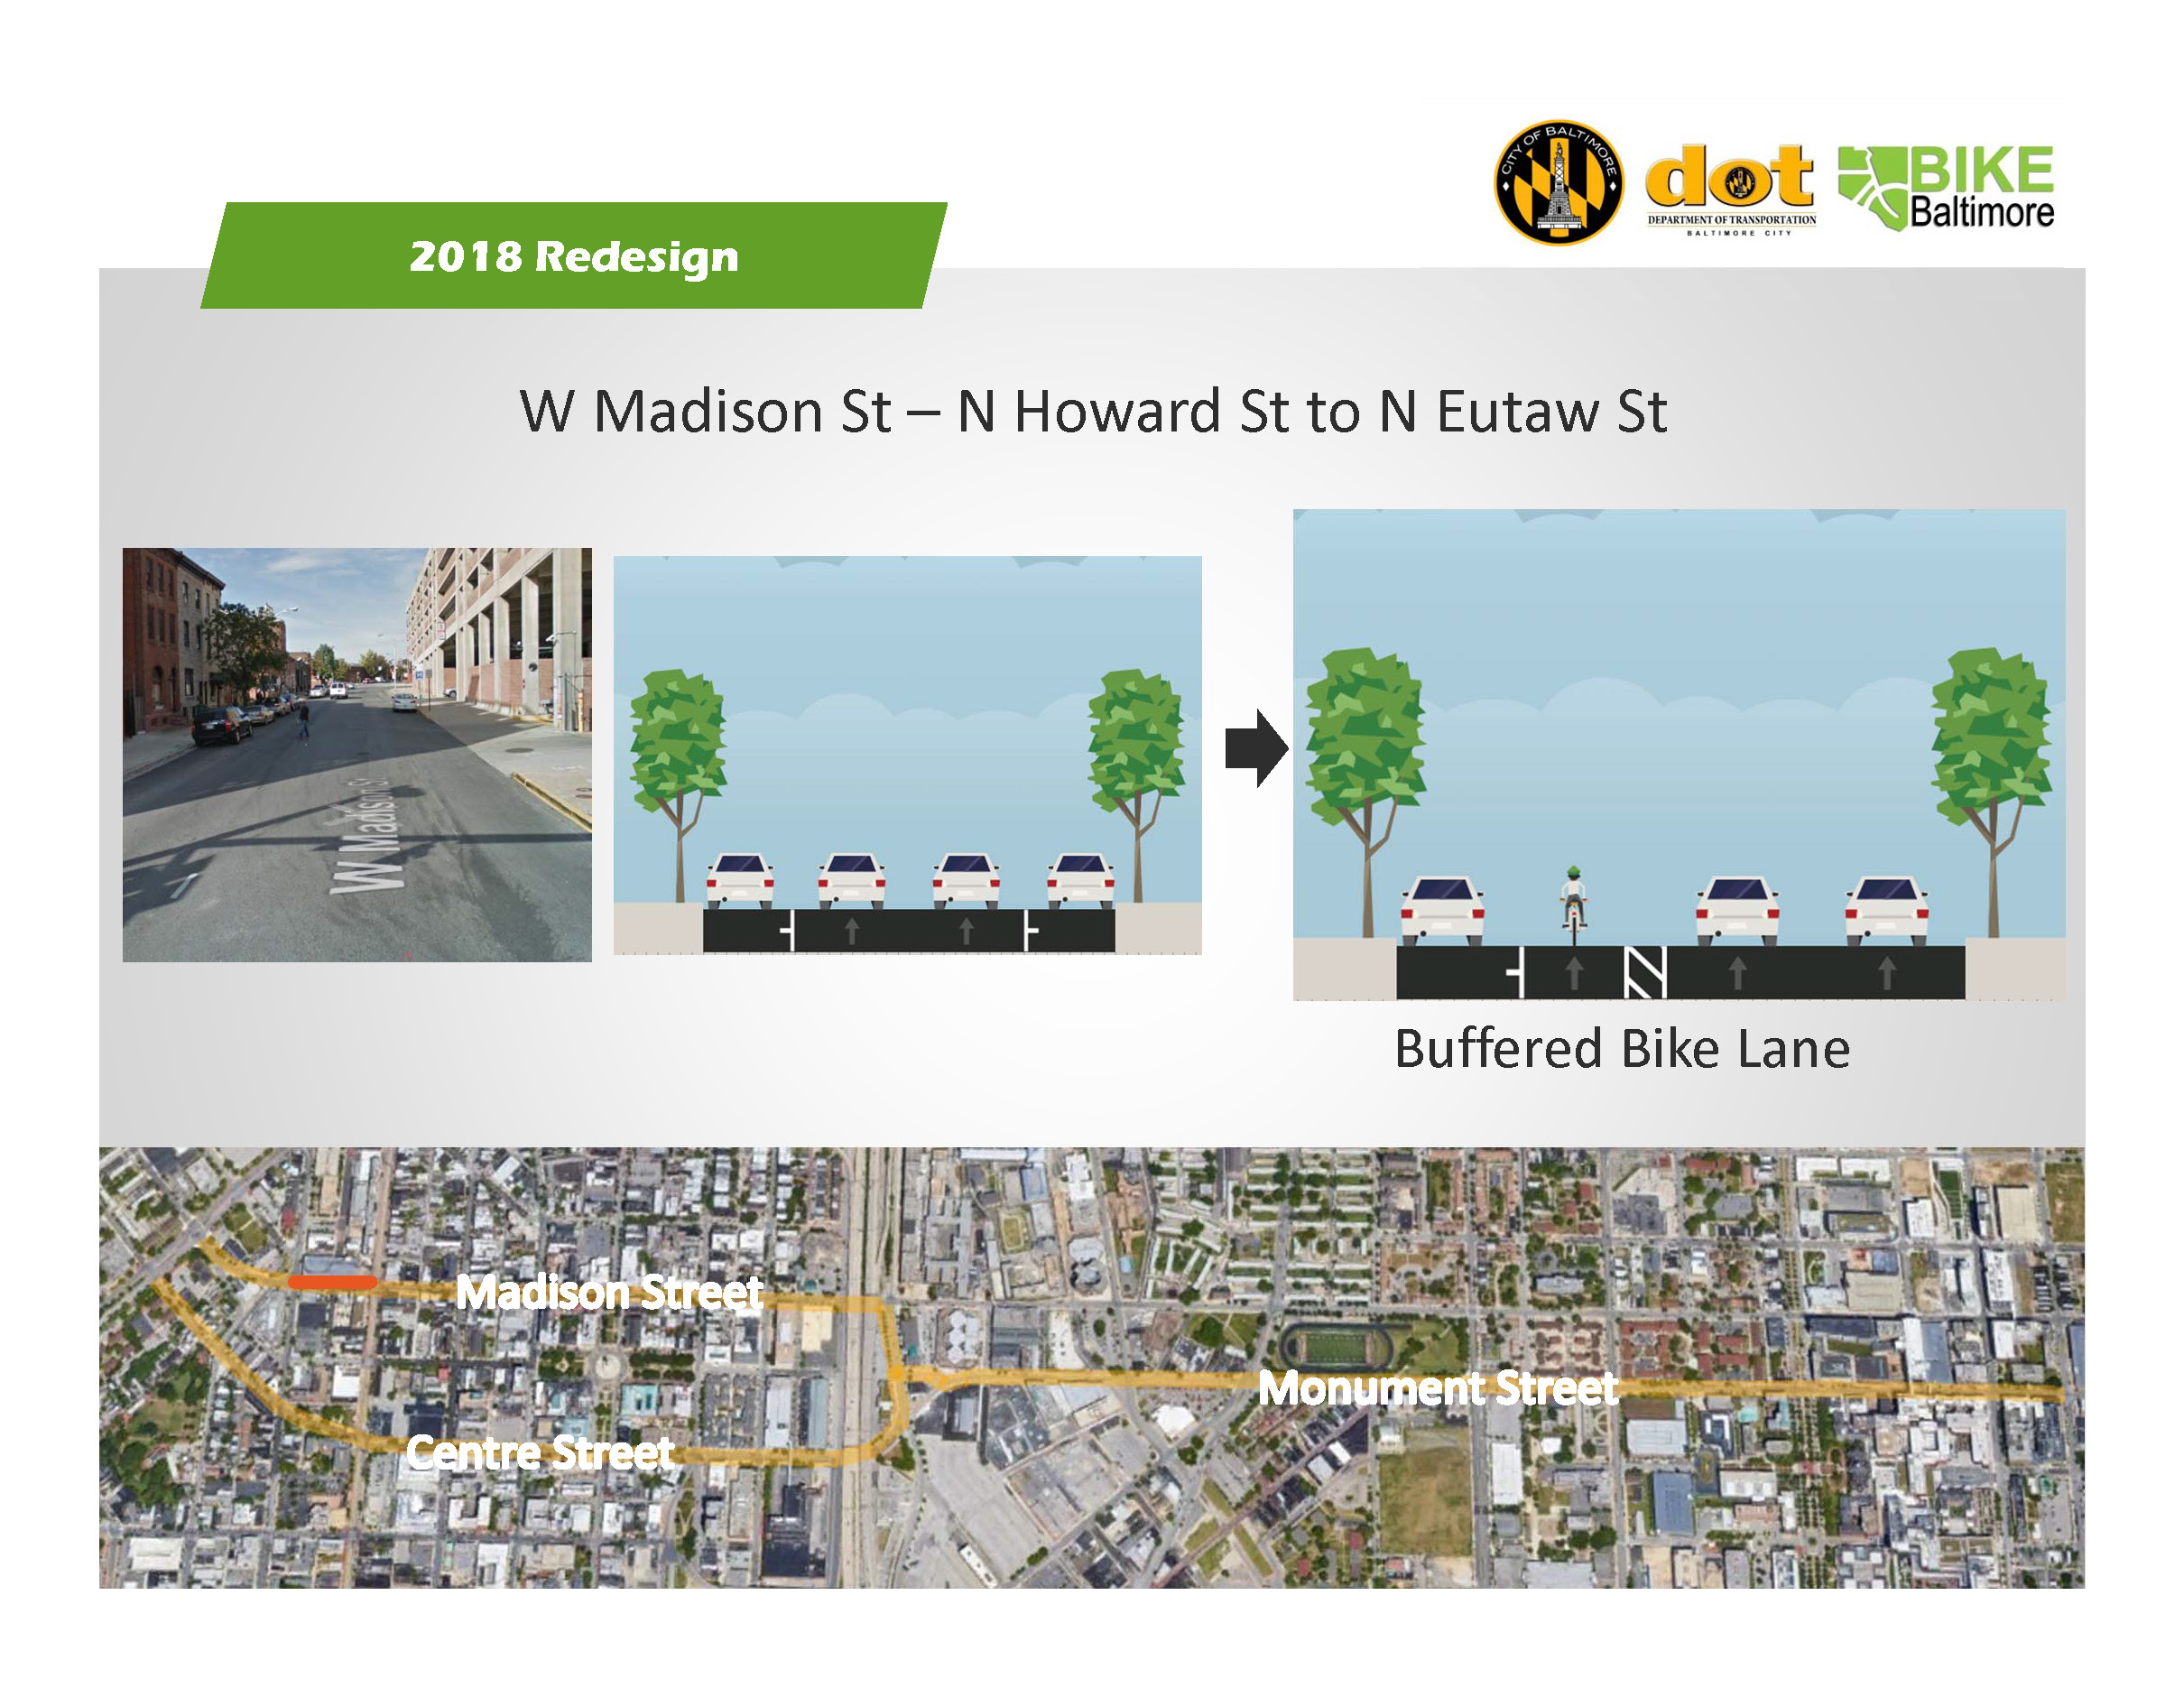 Microsoft PowerPoint - Downtown Bike Network Public Stakeholder Meeting 05.11.2018_Page_11.jpg